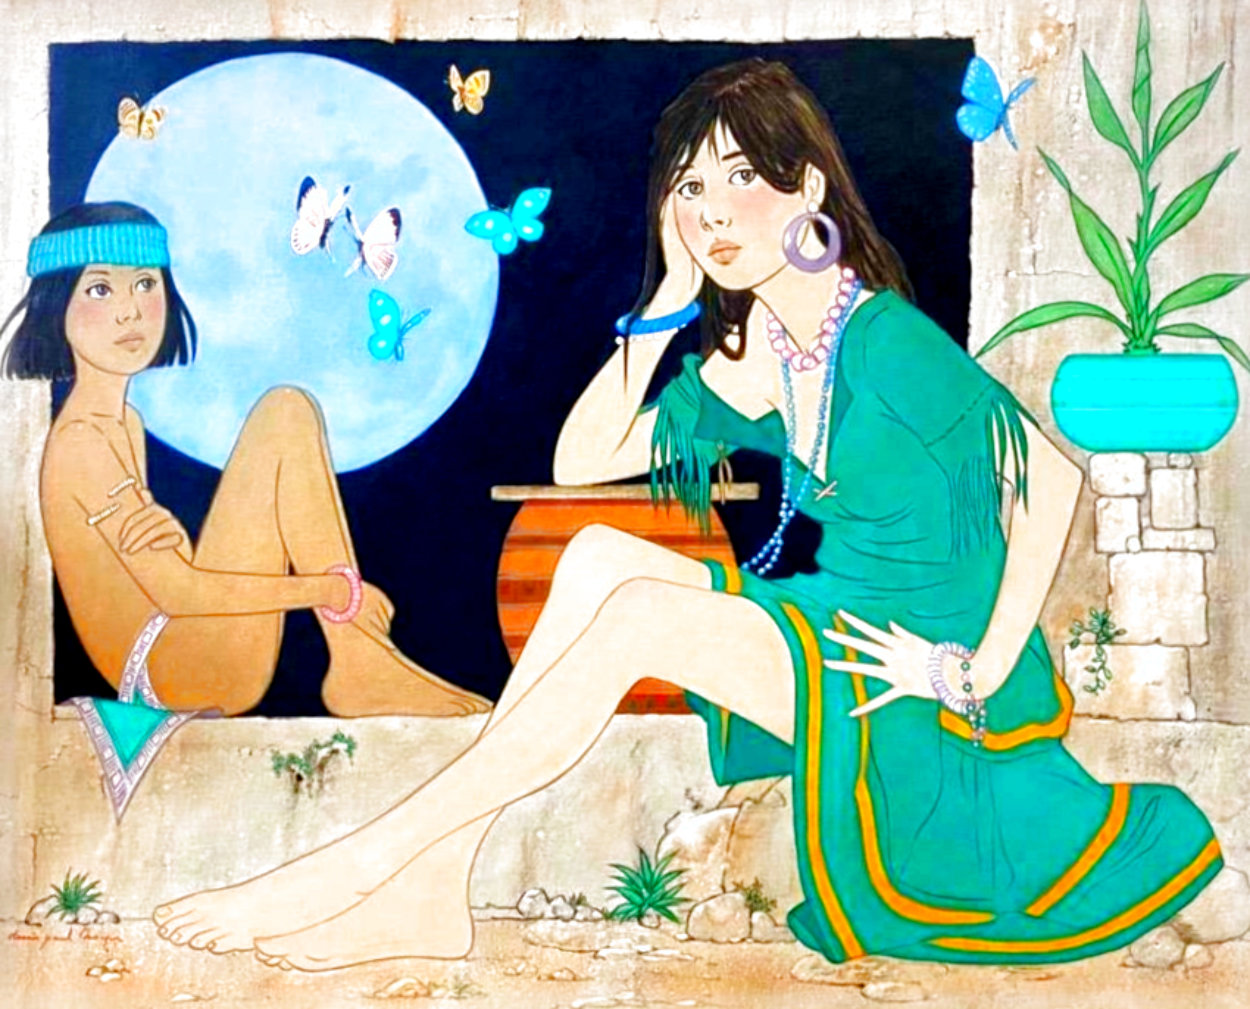 Maiden With Indian Boy and Blue Moon 41x49 Super Huge Original Painting by Dennis Paul Noyer